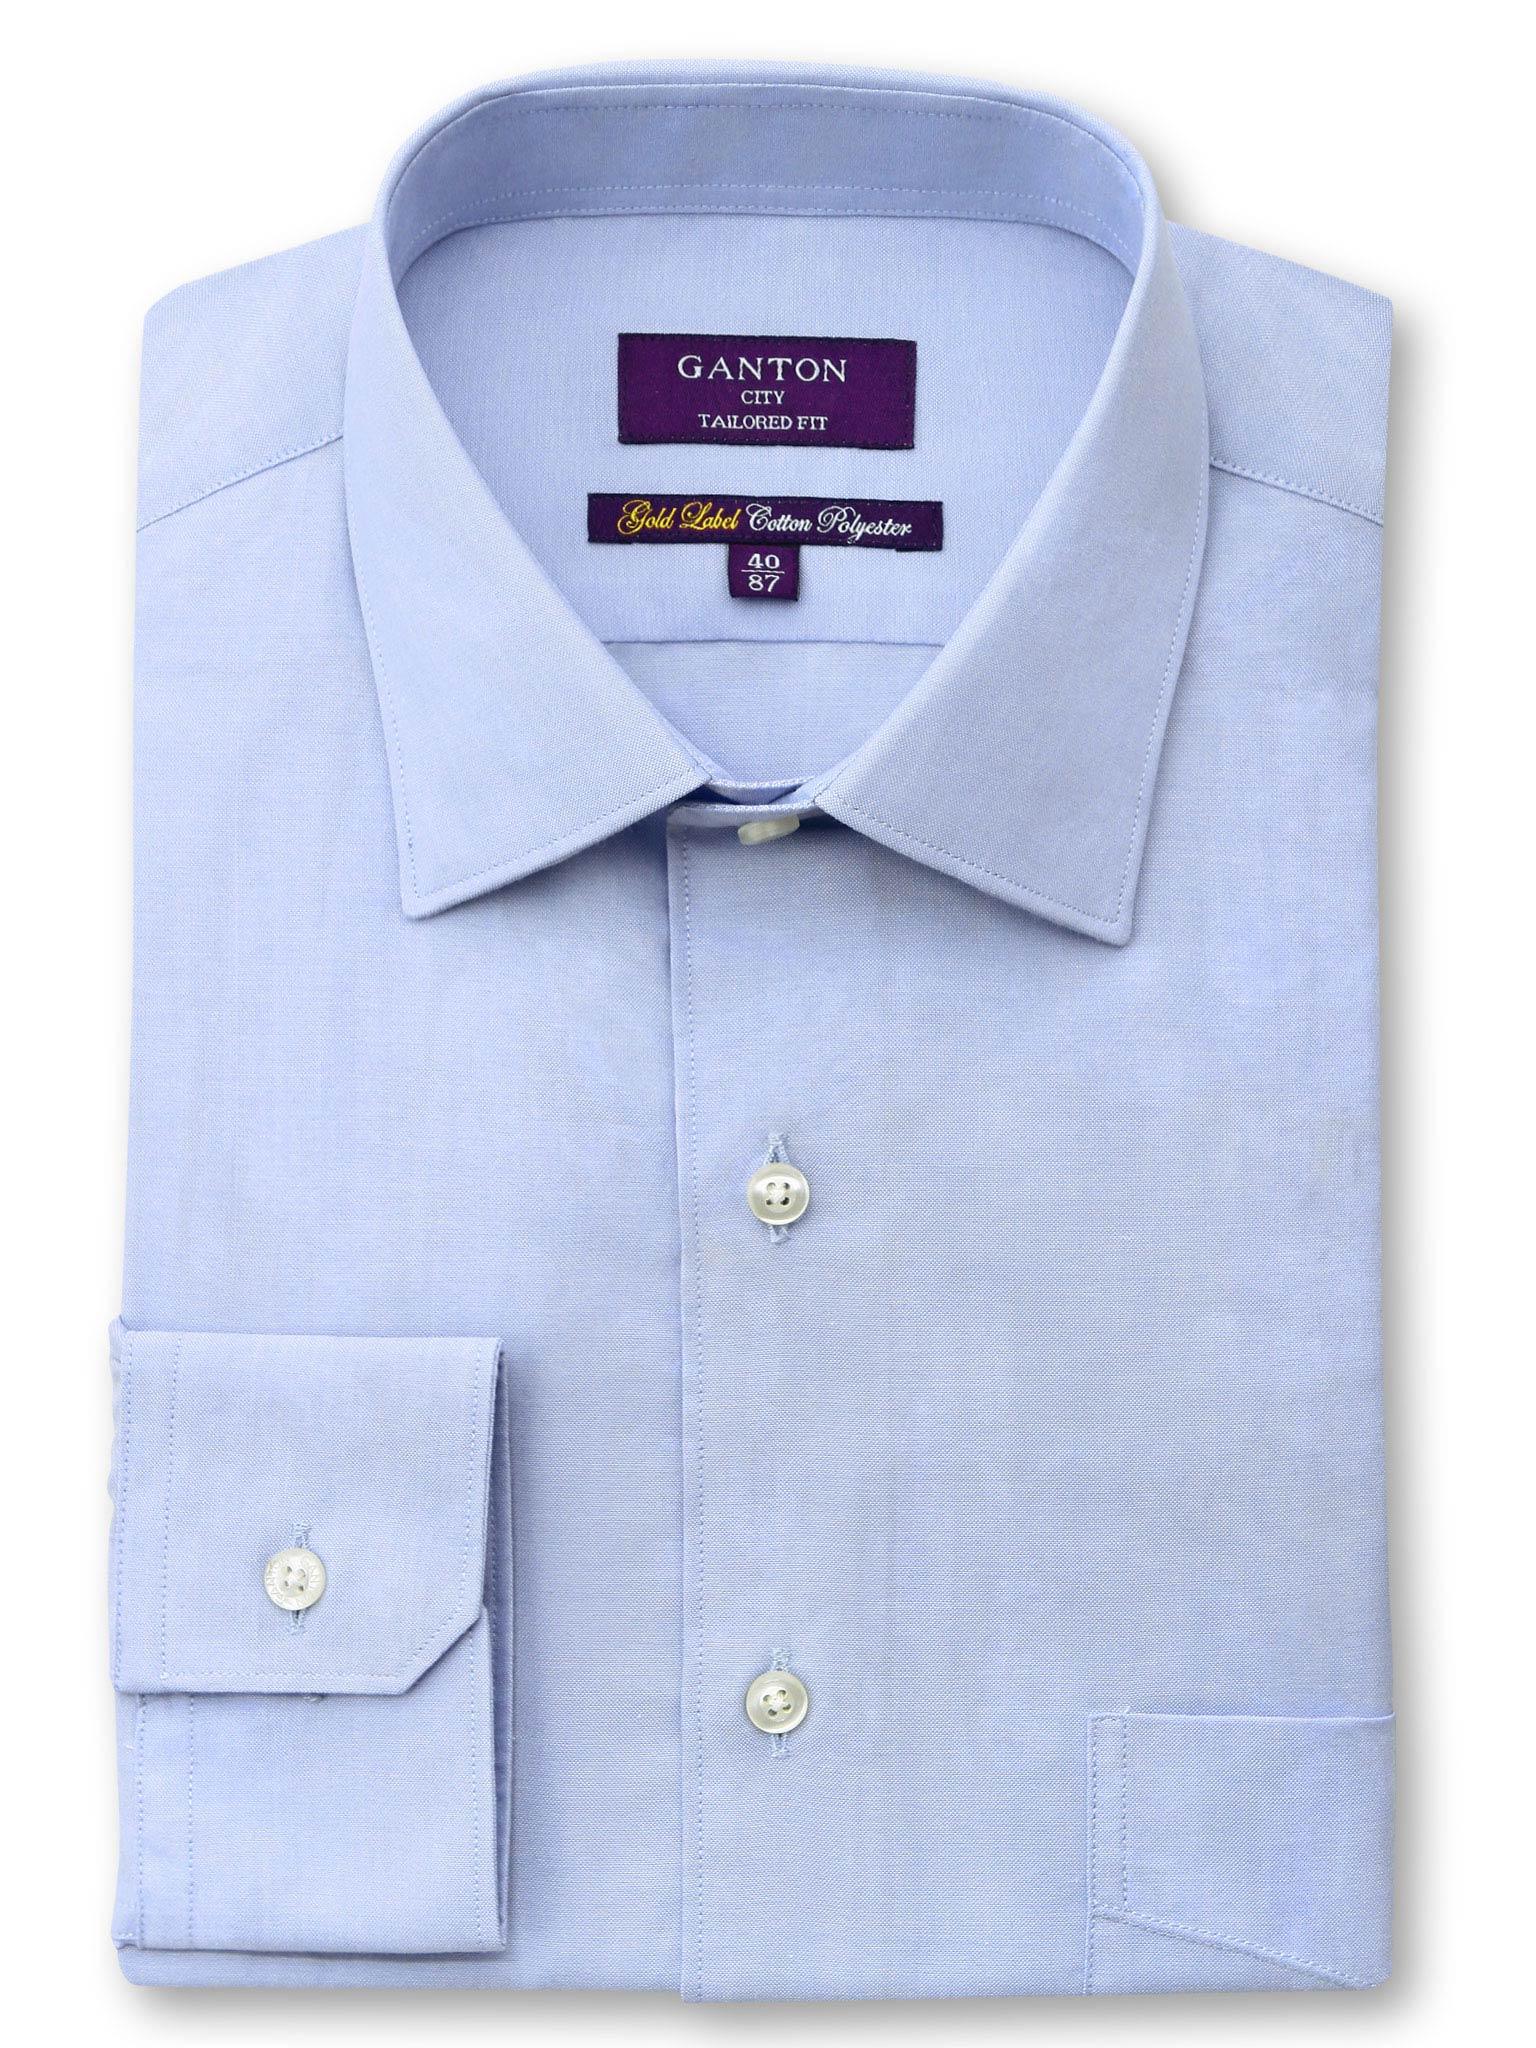 Blue Gold Label City Tailored Fit Cotton Polyester Shirt